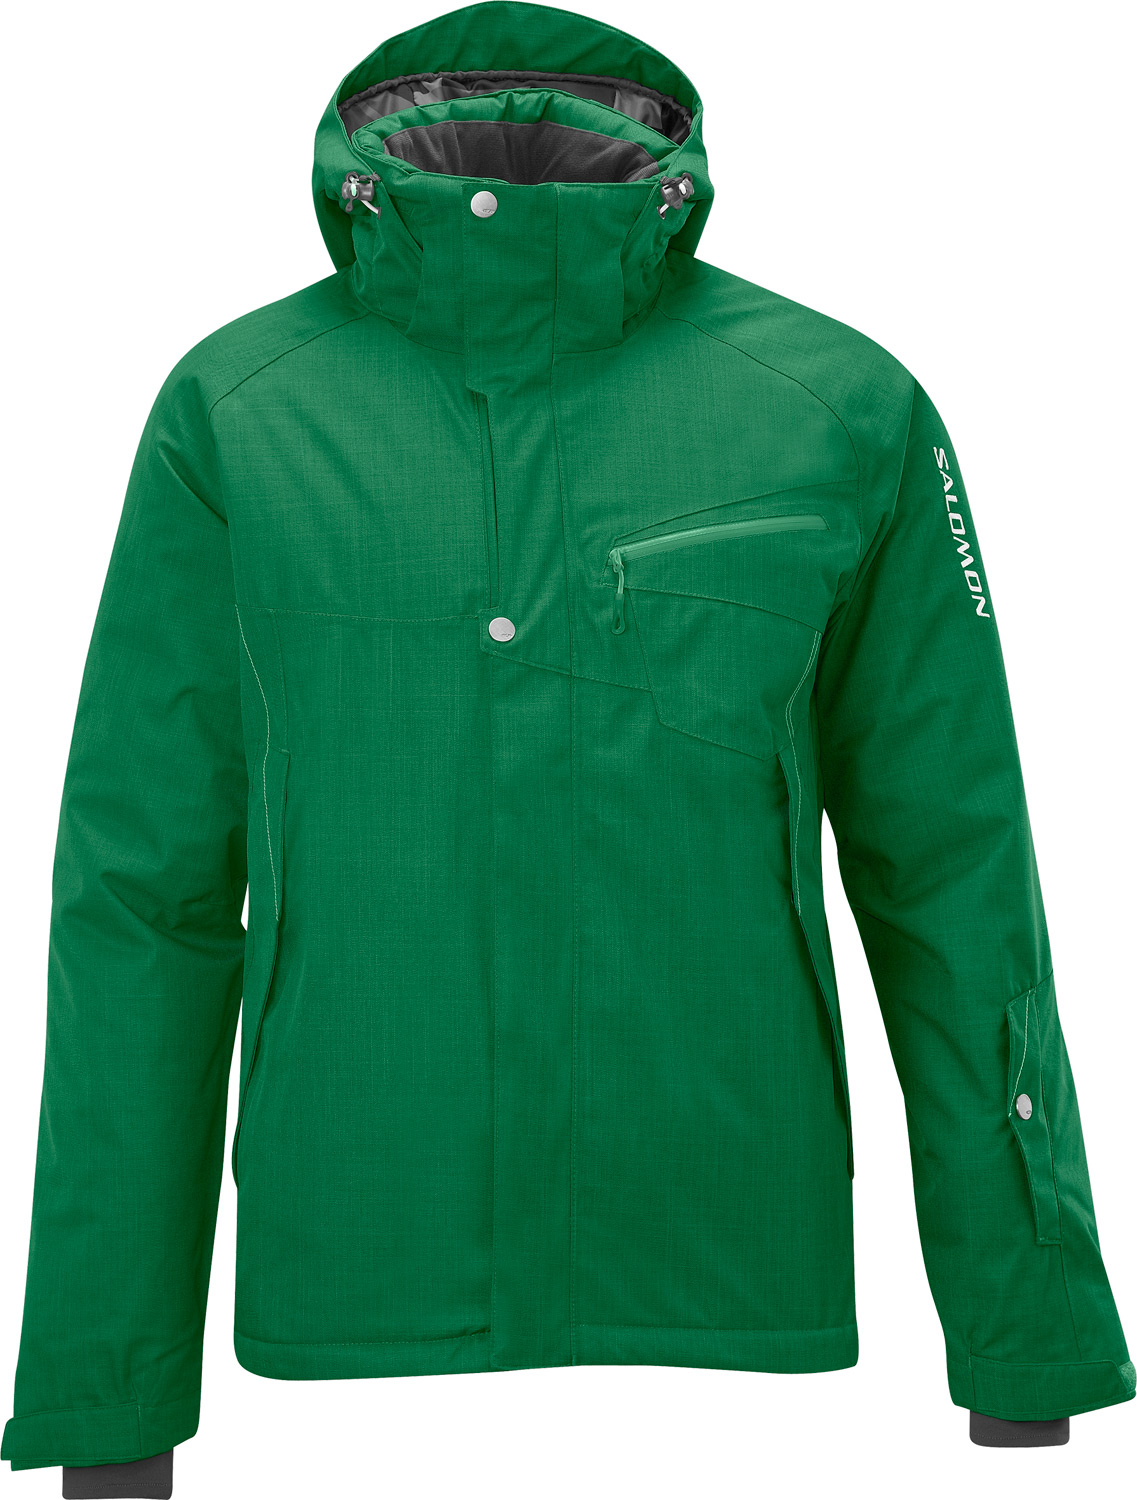 "Ski Equally cool on or off the hill, the denim-type fabric of this jacket performs in any weather.Key Features of the Salomon Fantasy II Ski Jacket: 10,000mm Waterproof 10,000g Breathability actiLOFT insulation 100gr/m Waterproof & breathable fabrics to ensure great comfort for outdoor activities. climaPRO ""natural"" Herringbone 2L 100% taped Removable zip-off hood with 3D adjustment Air vent system with mesh backing Powderskirt Snap-in connection with pant Inner stash pocket Lycra cuffs Left arm lift pass pocket FIT: Relax Weight 1370 COMPOSITION PADDING: PES 100% BACK LINING: PES 100% BODY LINING: PES 100% BODY: PES 100% - $186.95"